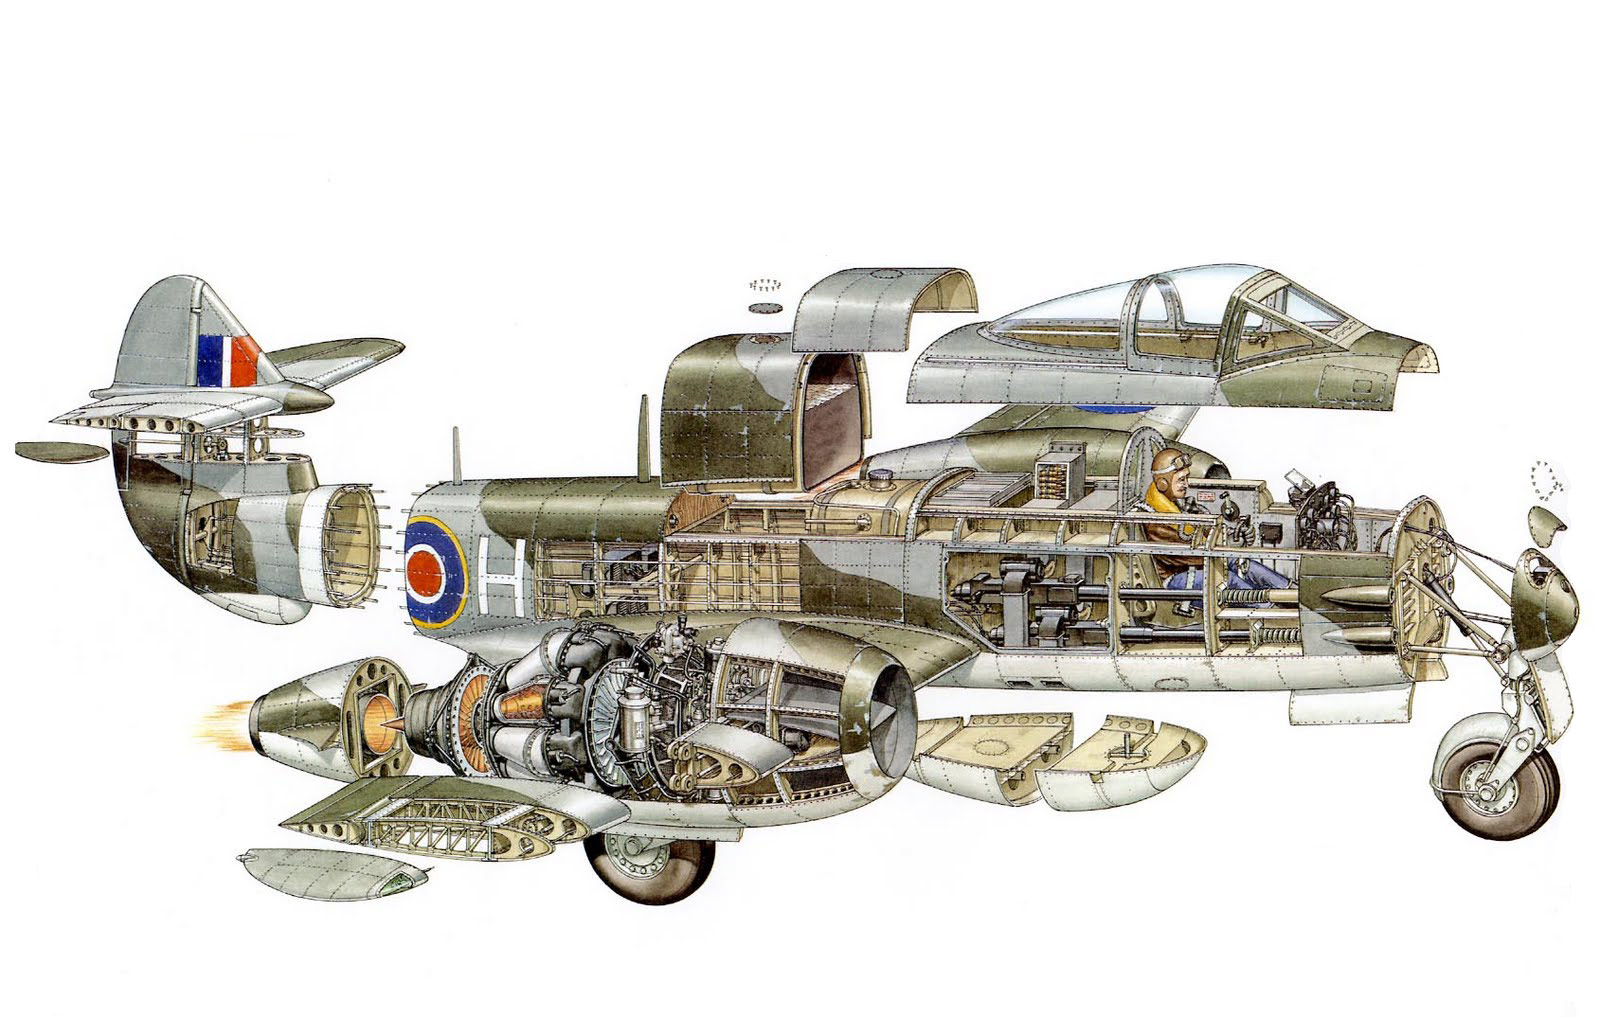 Gloster Meteor cutaway